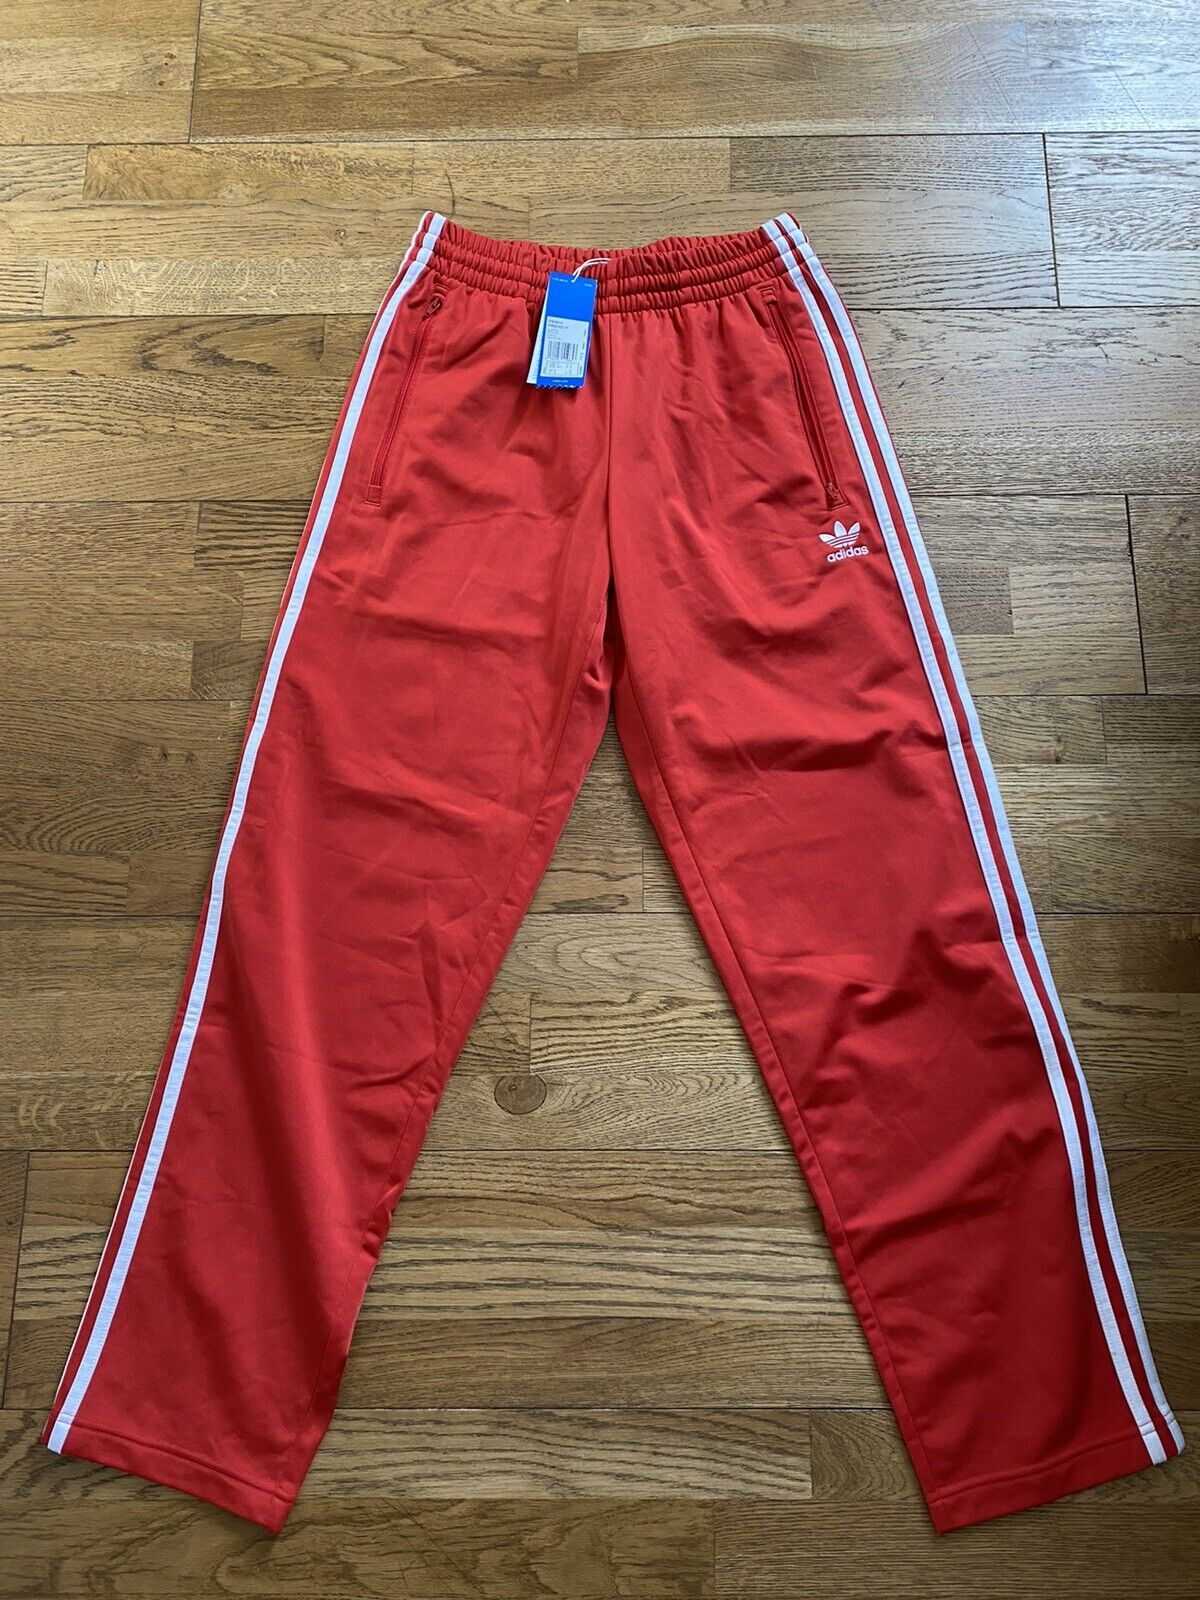 Men's Adidas Originals Firebird Lush Red Tracksuit Track Pants. Size S Small New